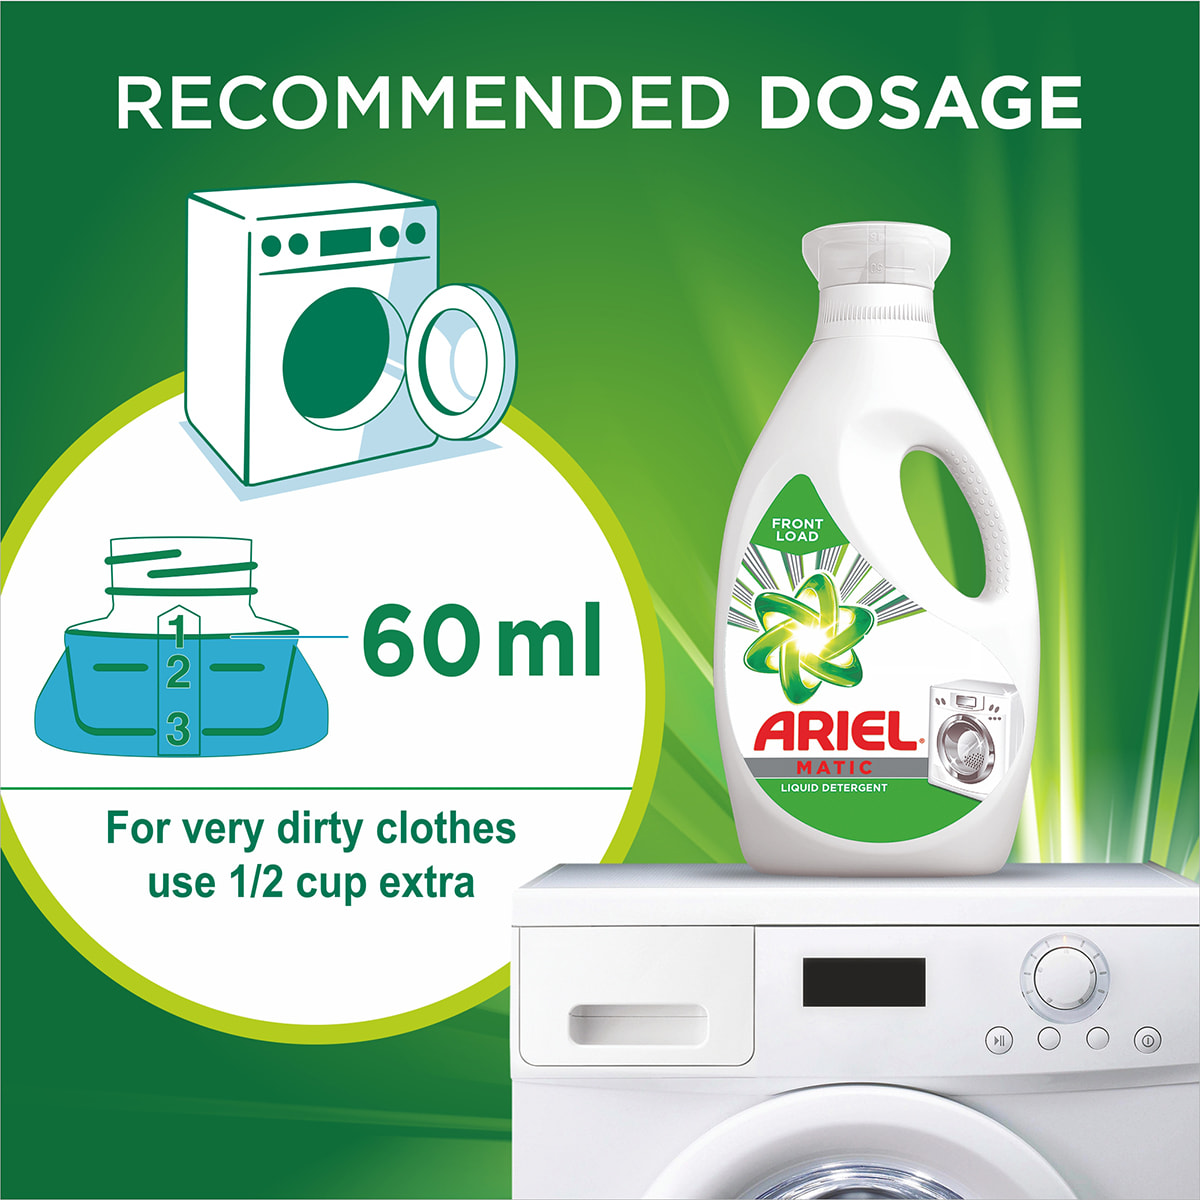 60 ml from the Ariel Matic Front Loader Liquid is the recommended dosage, for very dirty clothes use 1/2 cup extra